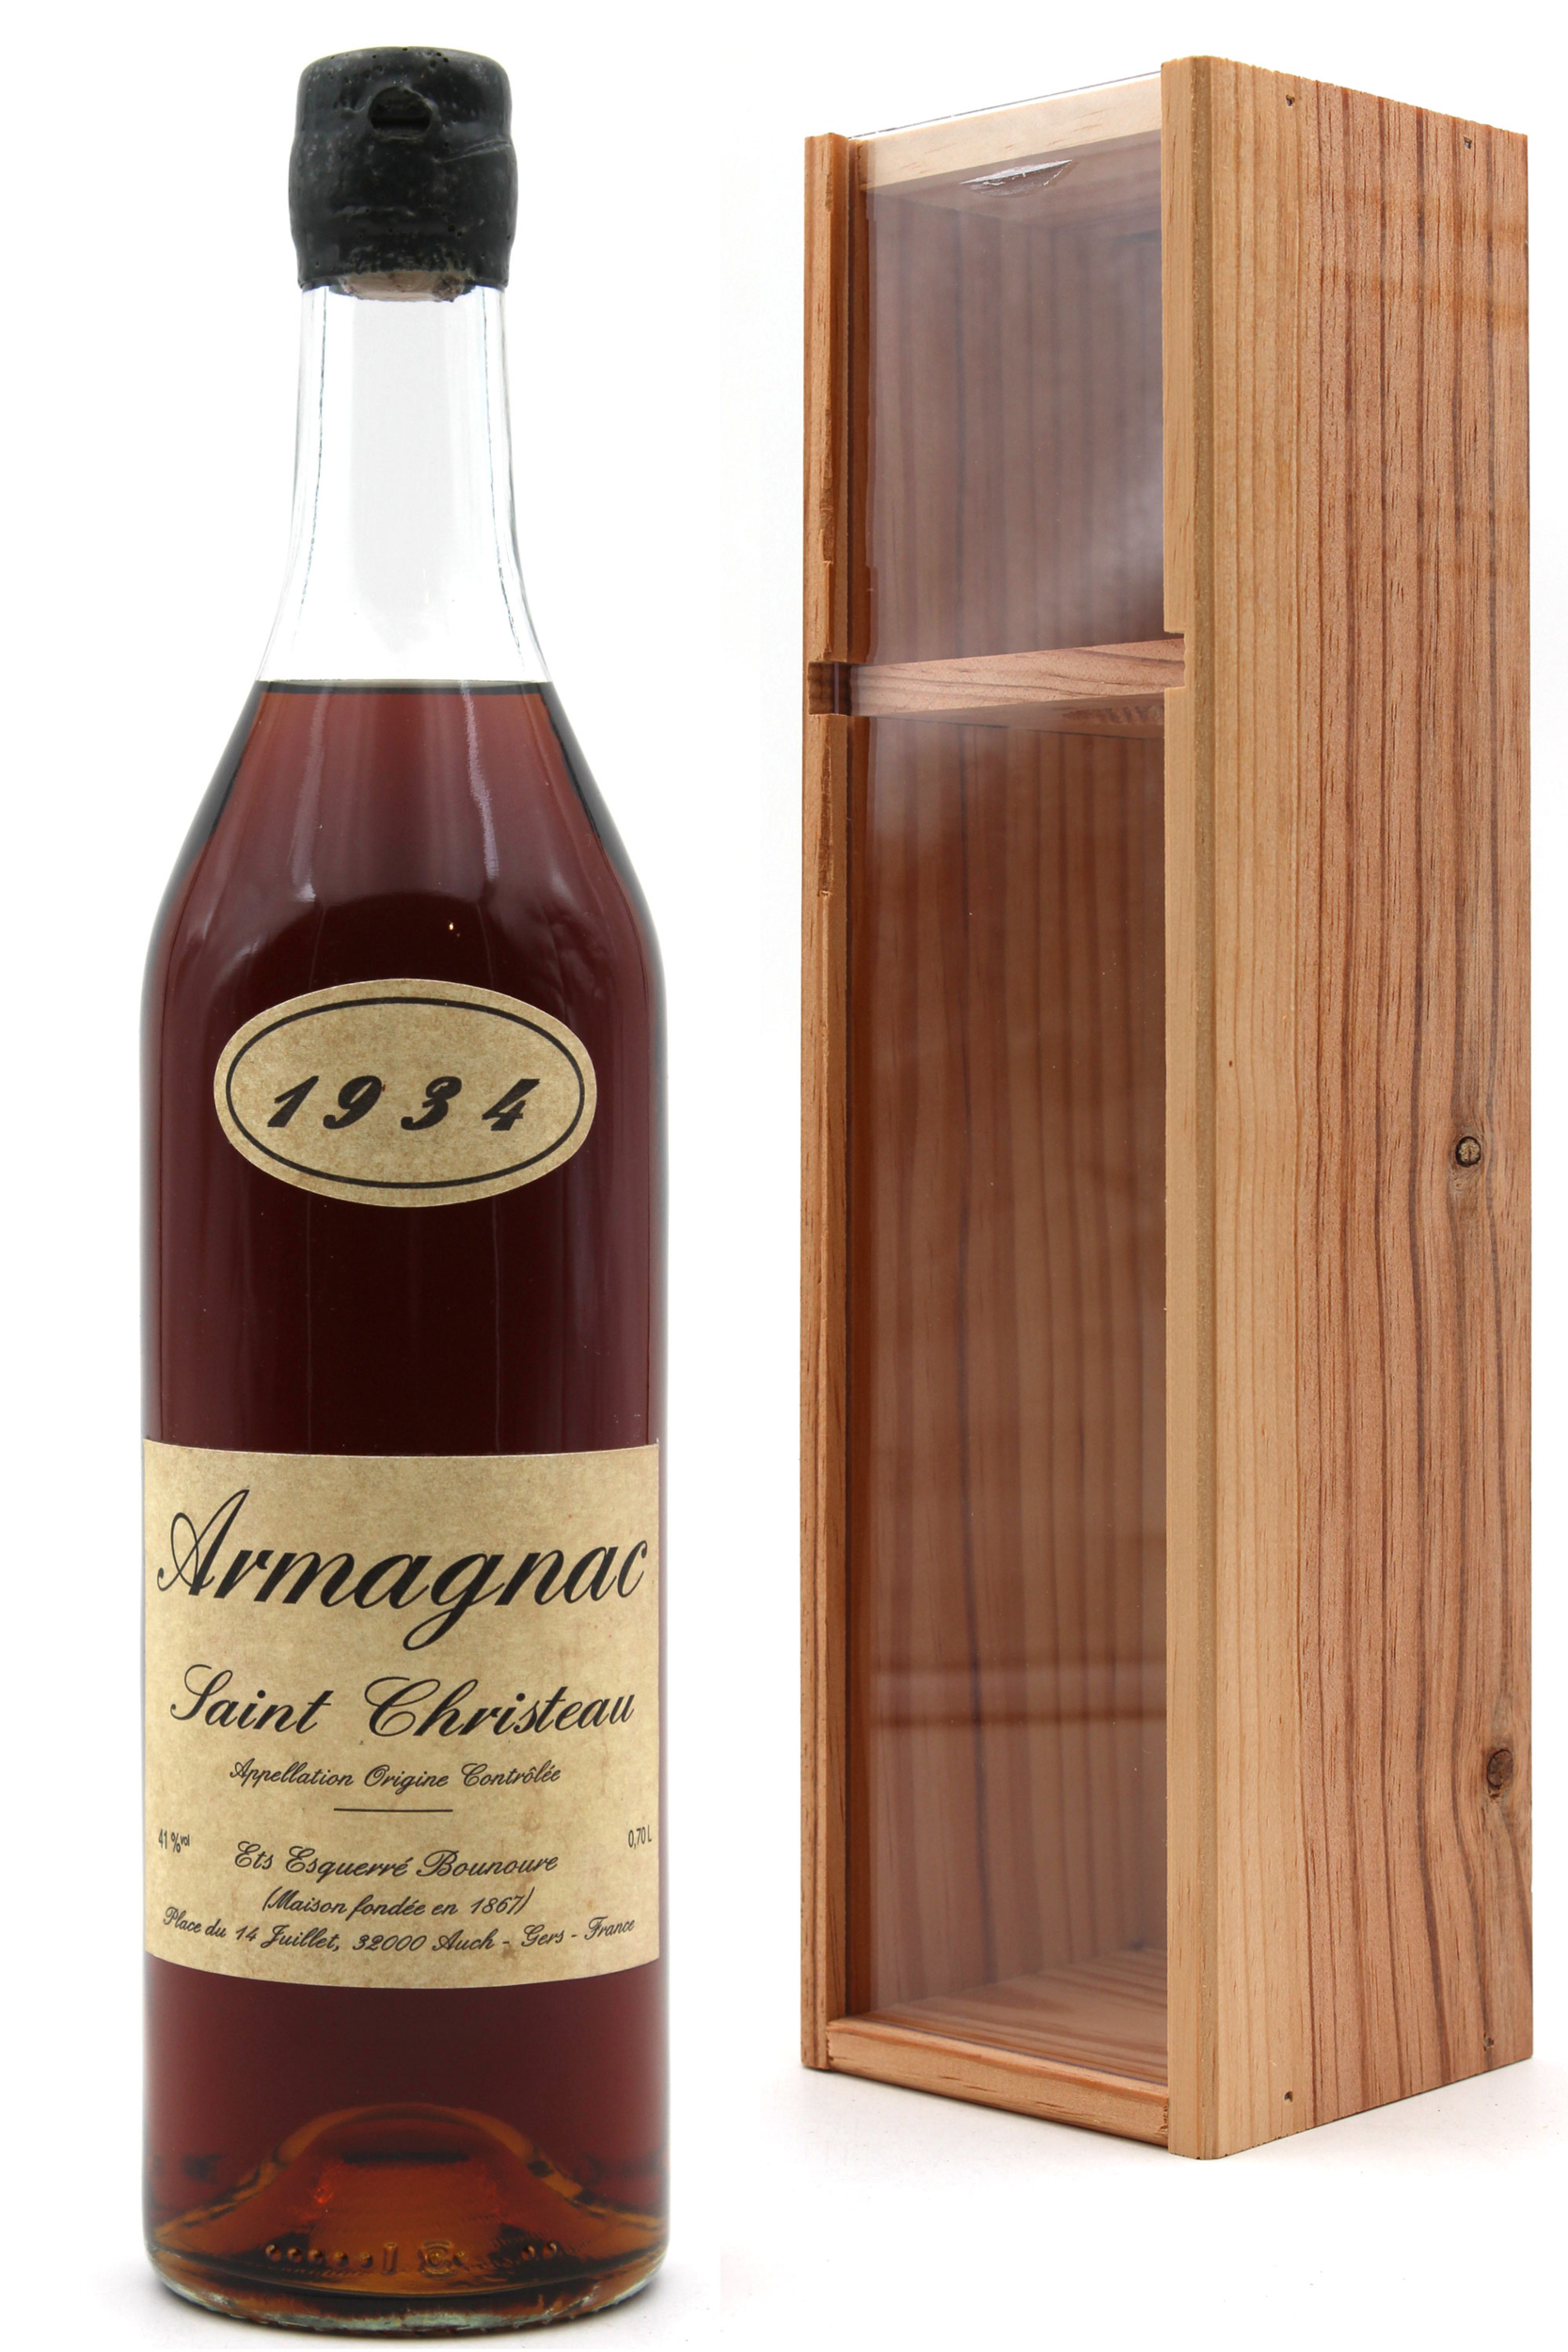 Armagnac Saint Christeau 1934 - 70cl